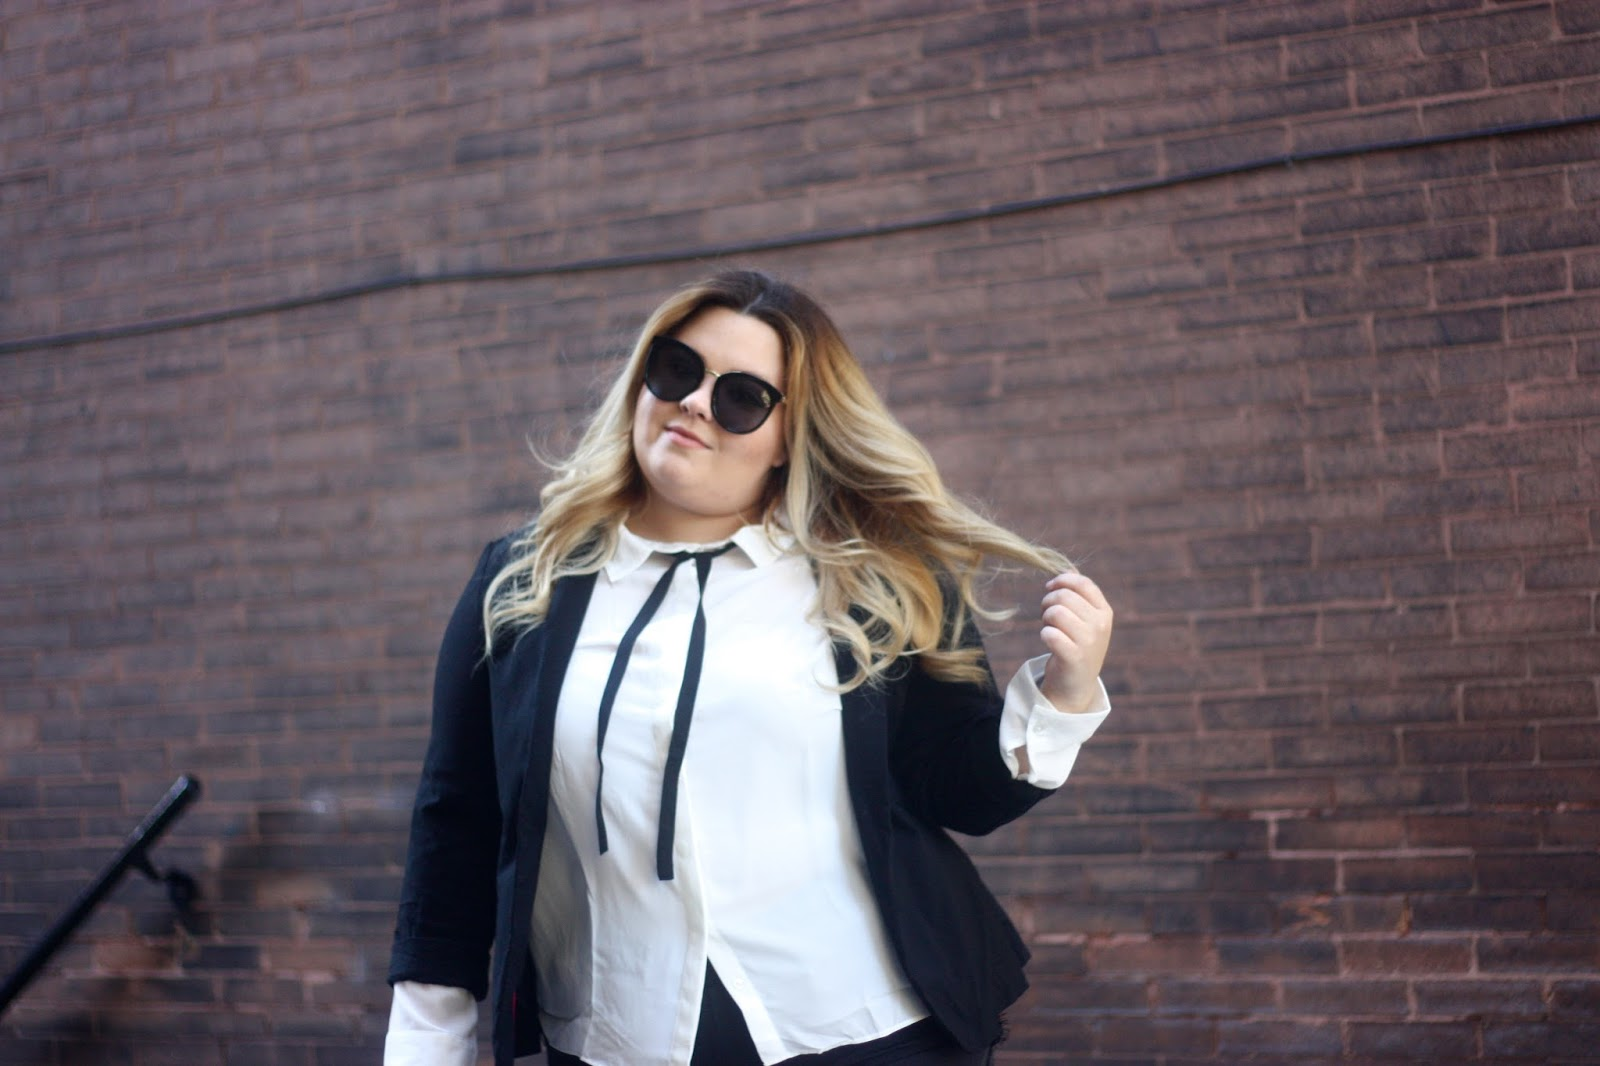 natalie craig, natalie in the city, curvy girl fashion, bow tie blouse, suzy shier, canada fashion, plus size lace shorts, plus size fashion, chicago blogger, midwest blogger, natalieinthecoty.com, plus size blazer, open toed perforated booties, karl lagerfeld, college fashion week, fatshion